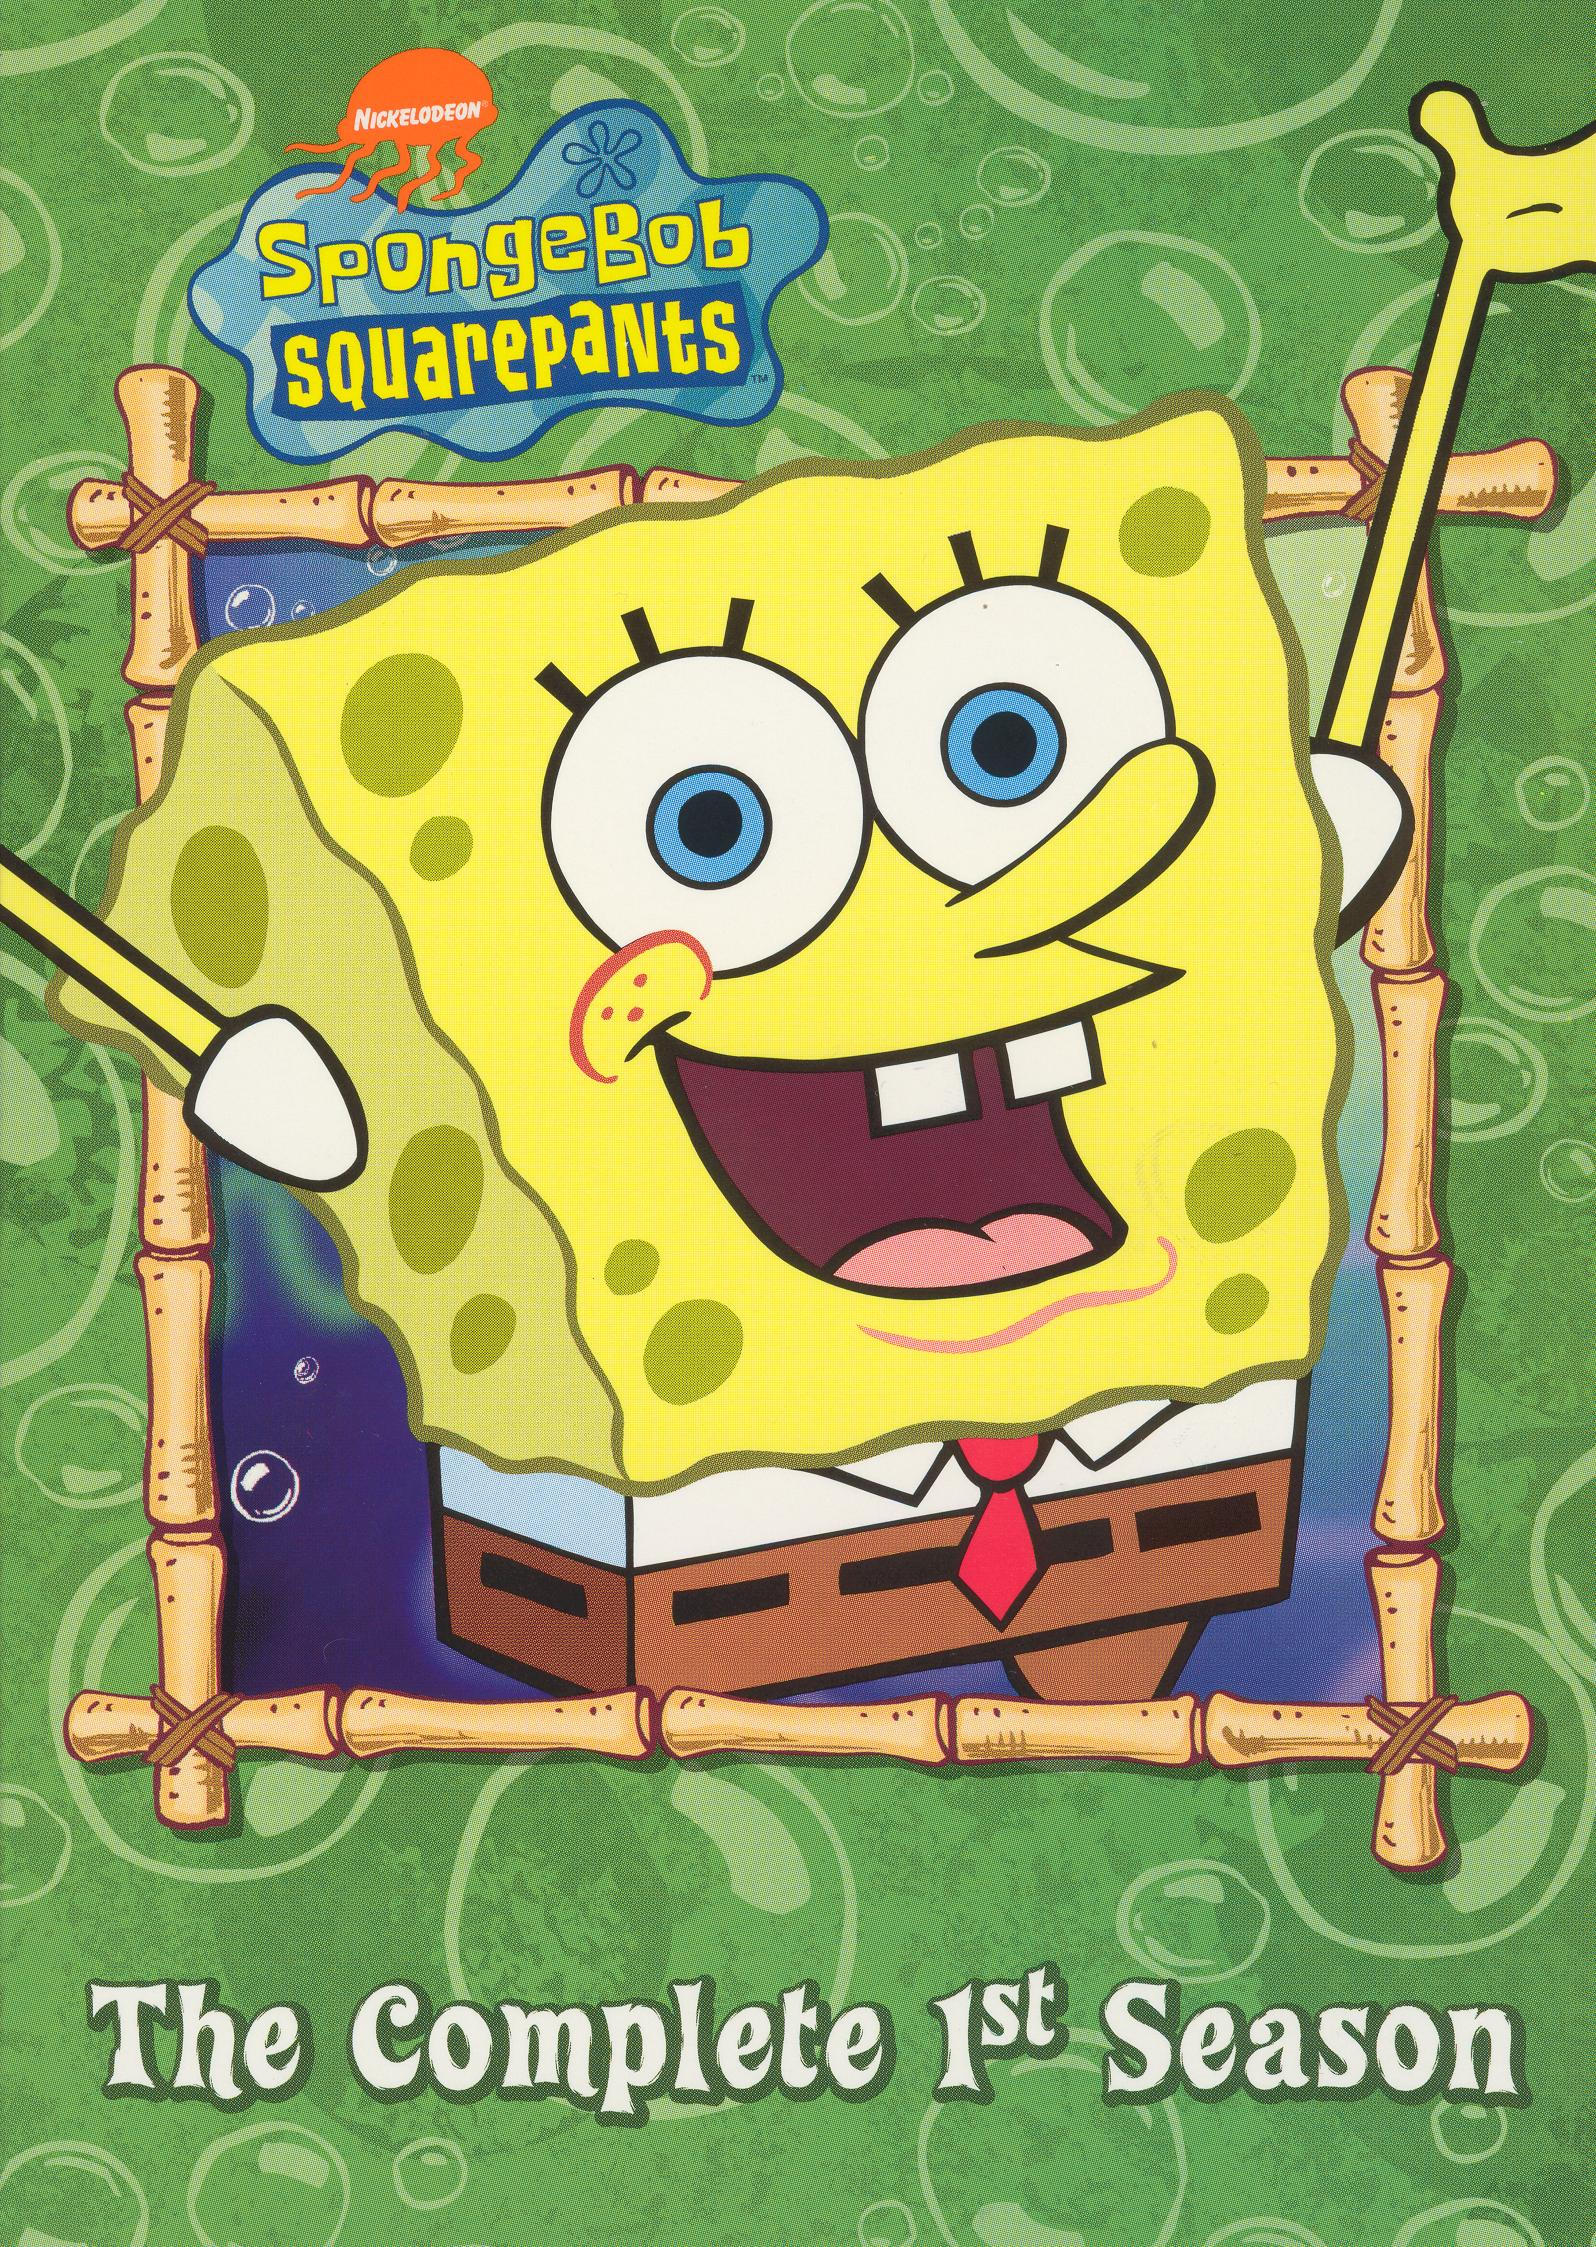 SpongeBob SquarePants: The Complete 1st Season (2003 DVD)